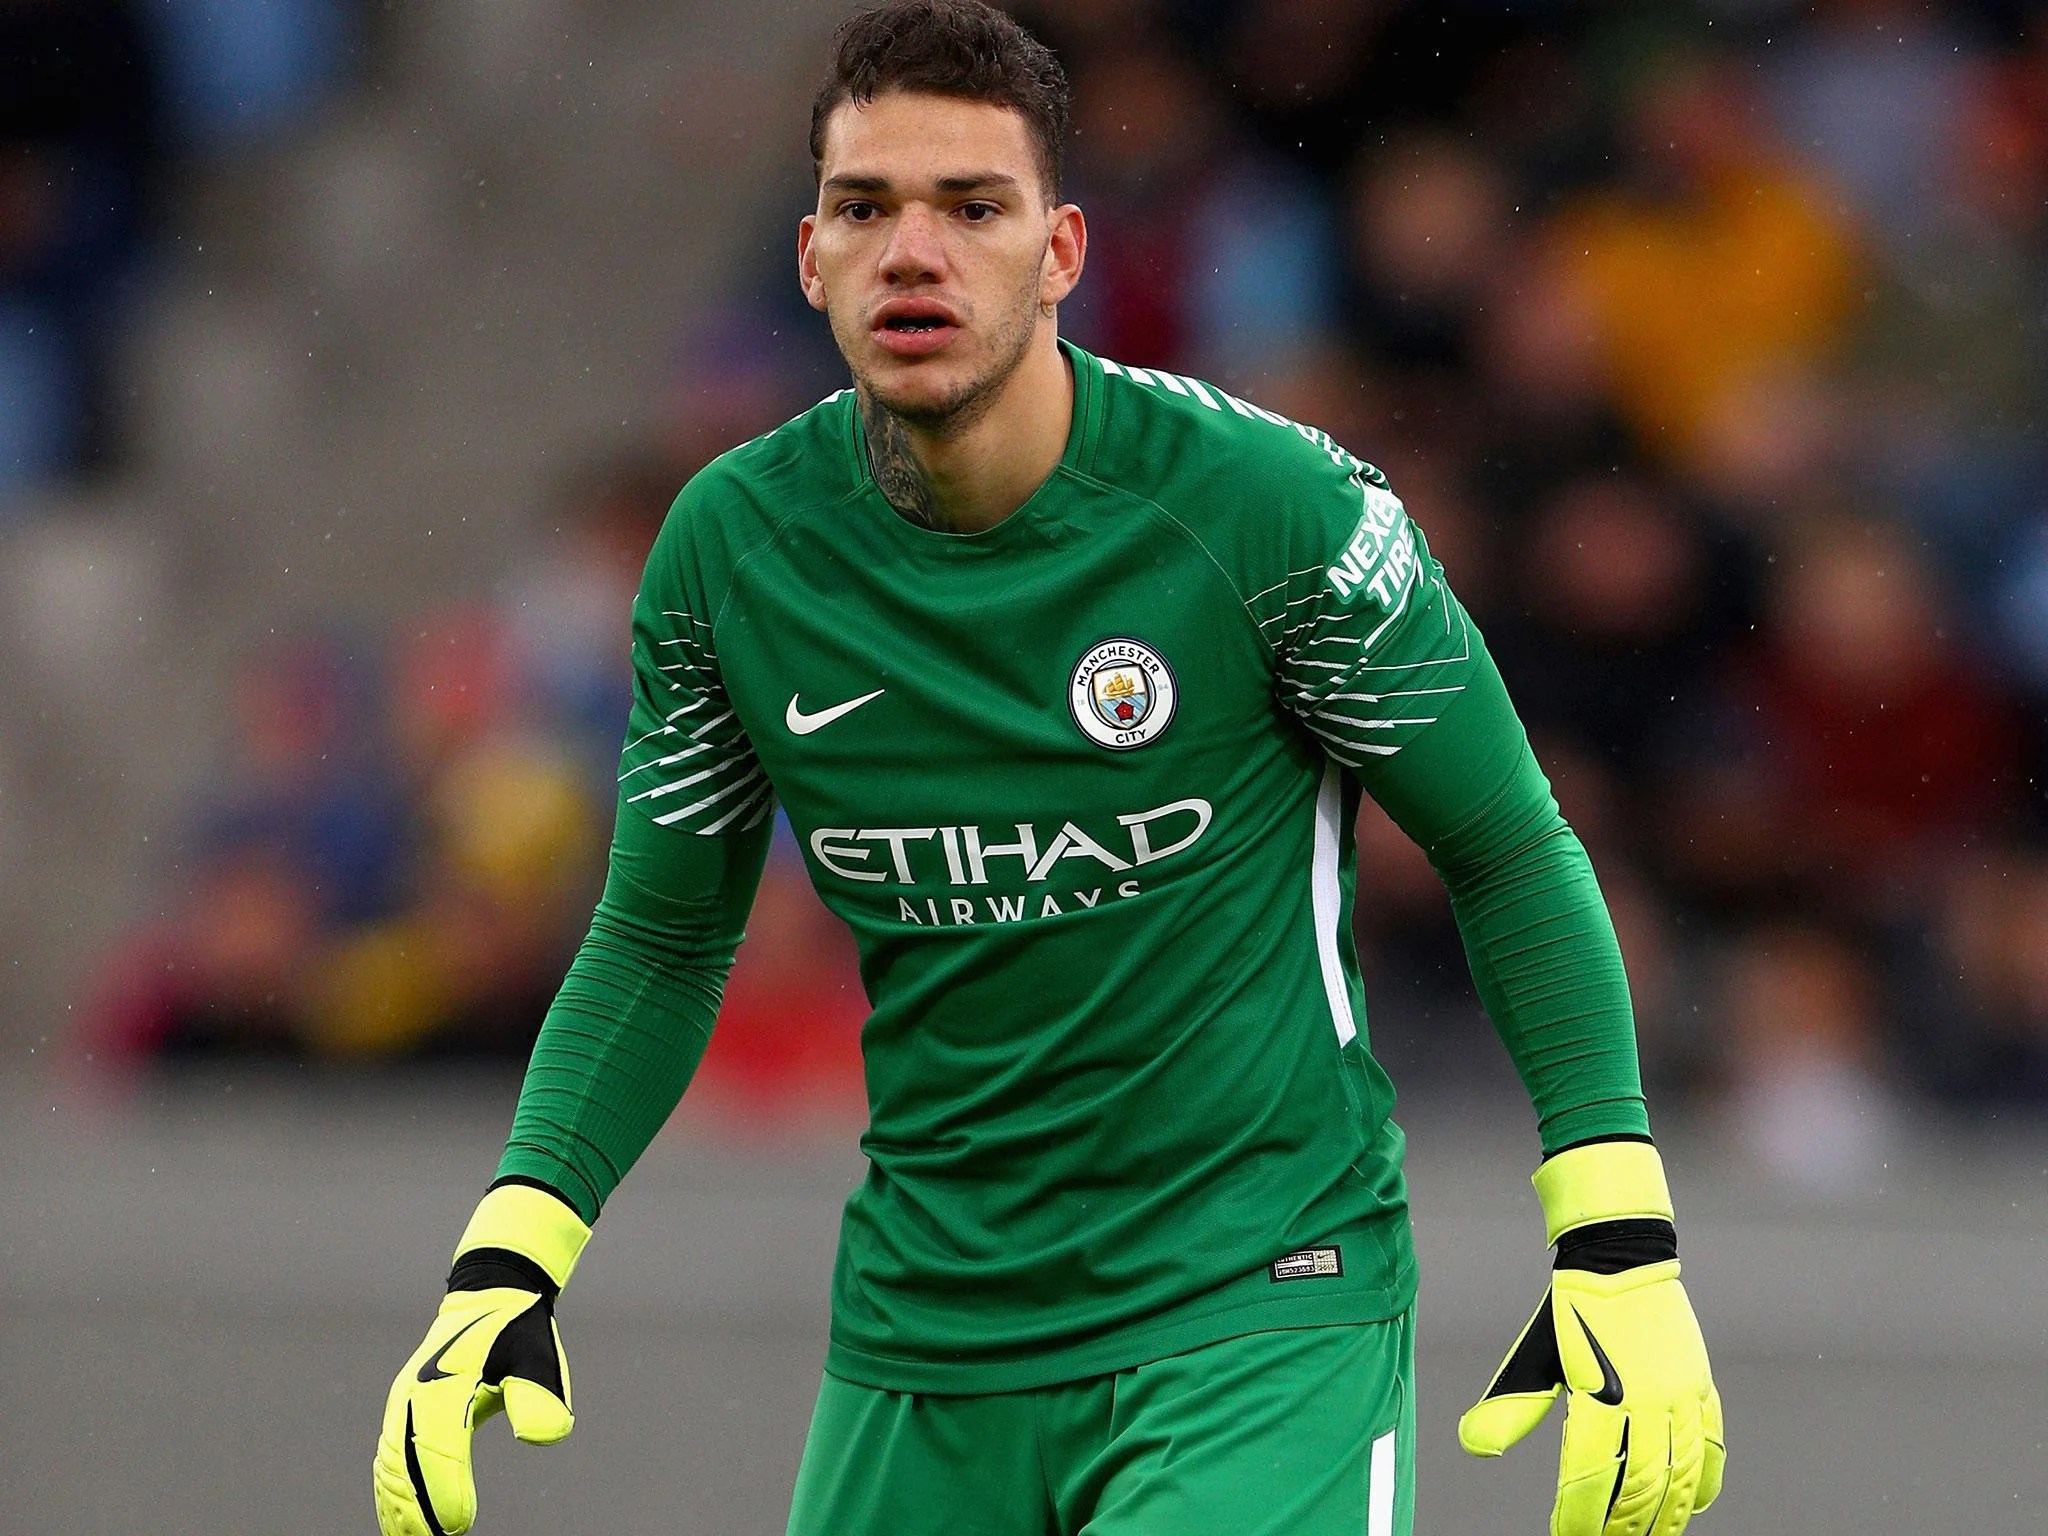 Patrick Wallpaper Hd Ederson Unfazed By World Record Price Tag Ahead Of Debut